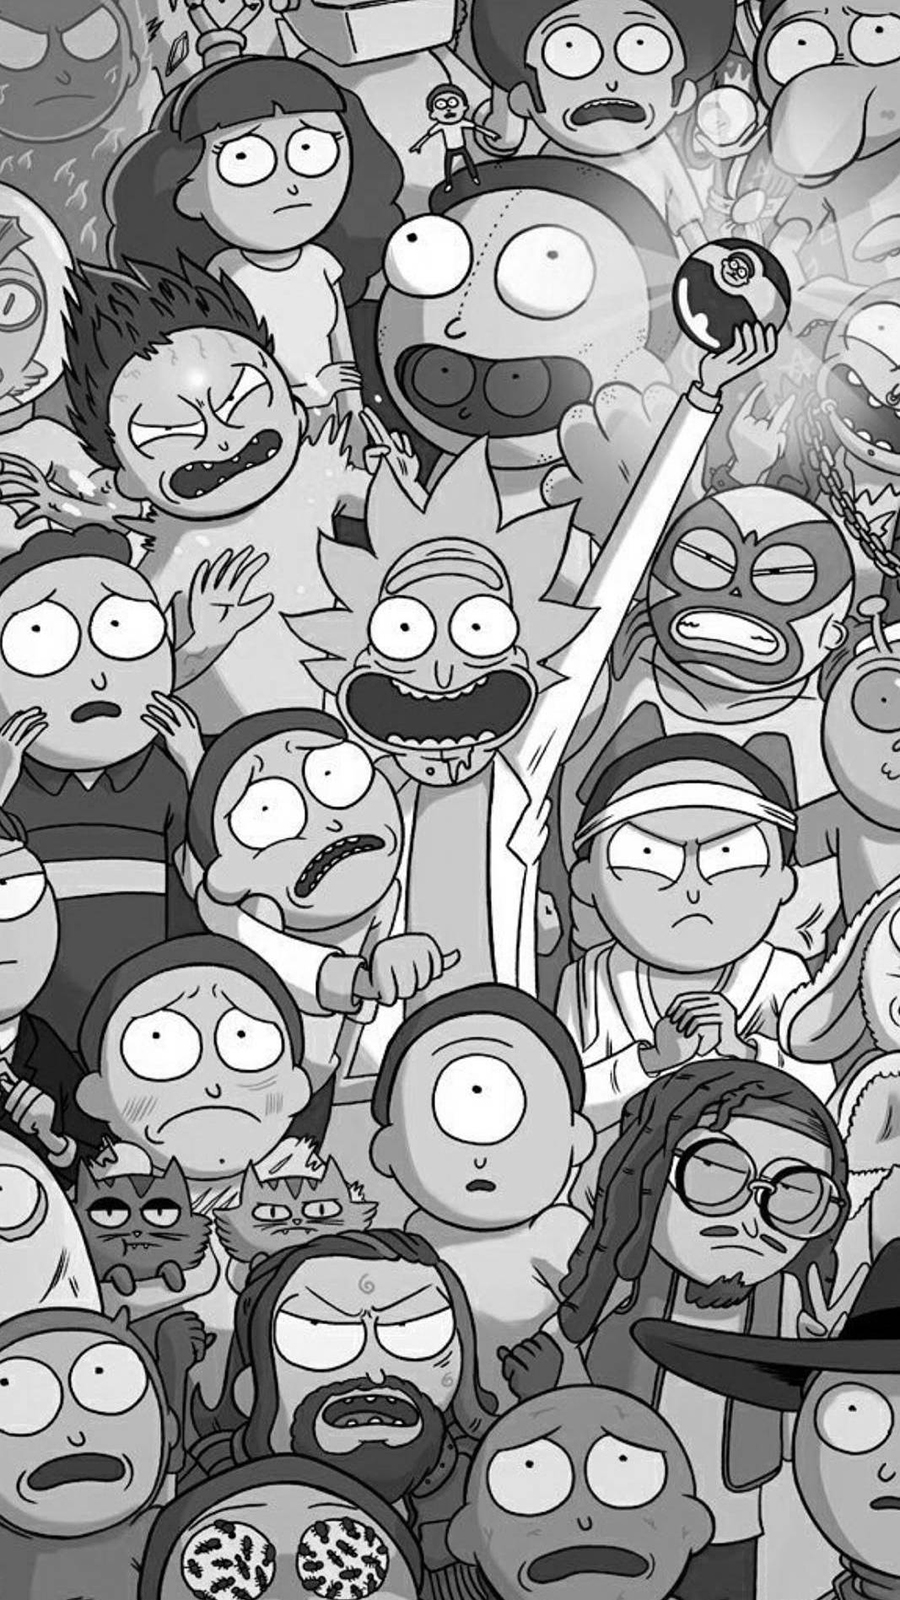 Rick & Morty Cartoon Character Wallpapers Free Download For Your Device